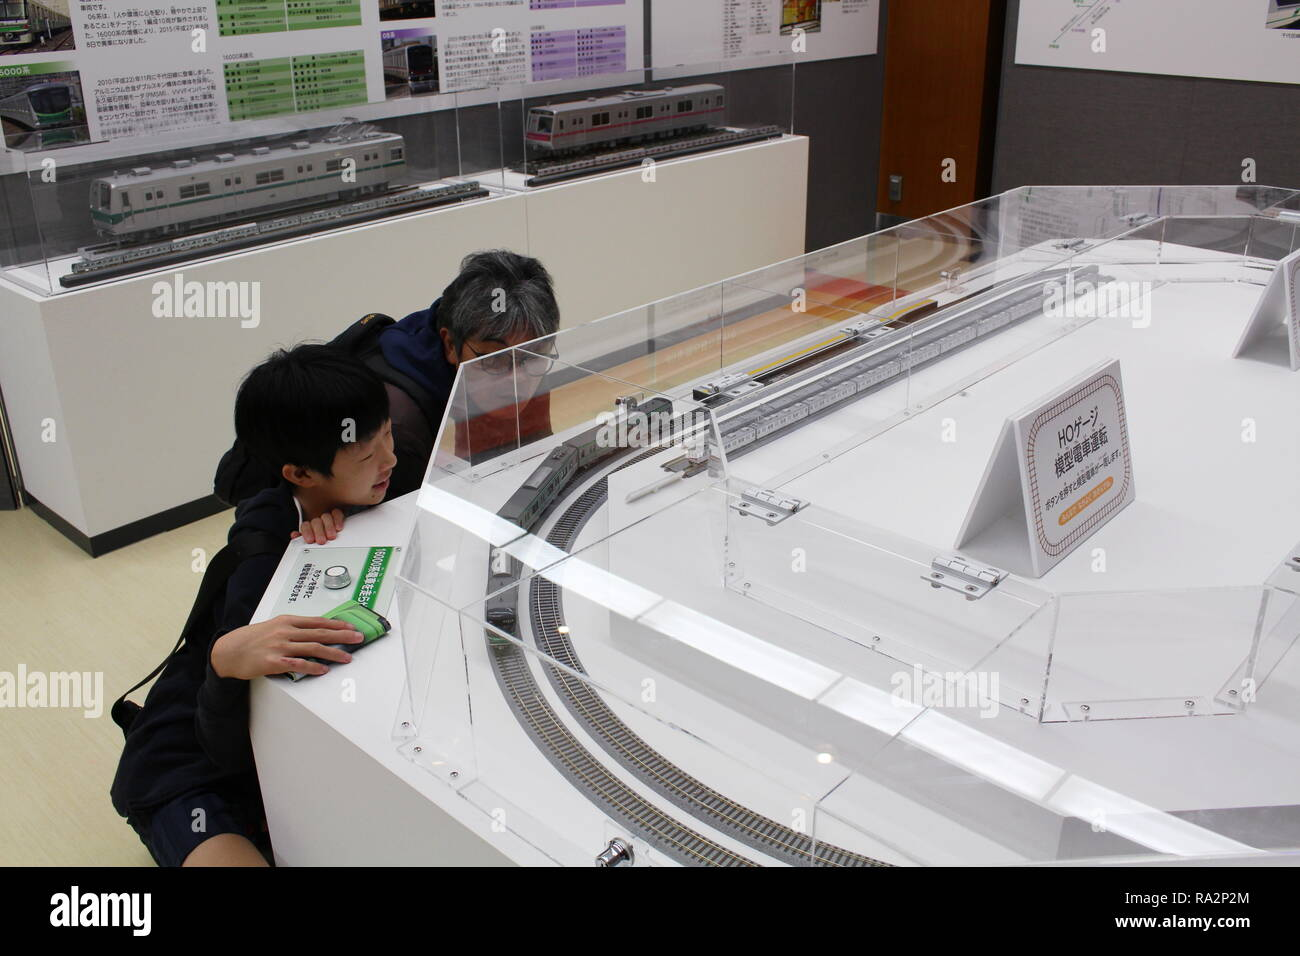 Visitors watch a HO Gauge model of a Chiyoda Line Tokyo Metro train at Tokyo Metro Museum. Some motion blur. - Stock Image